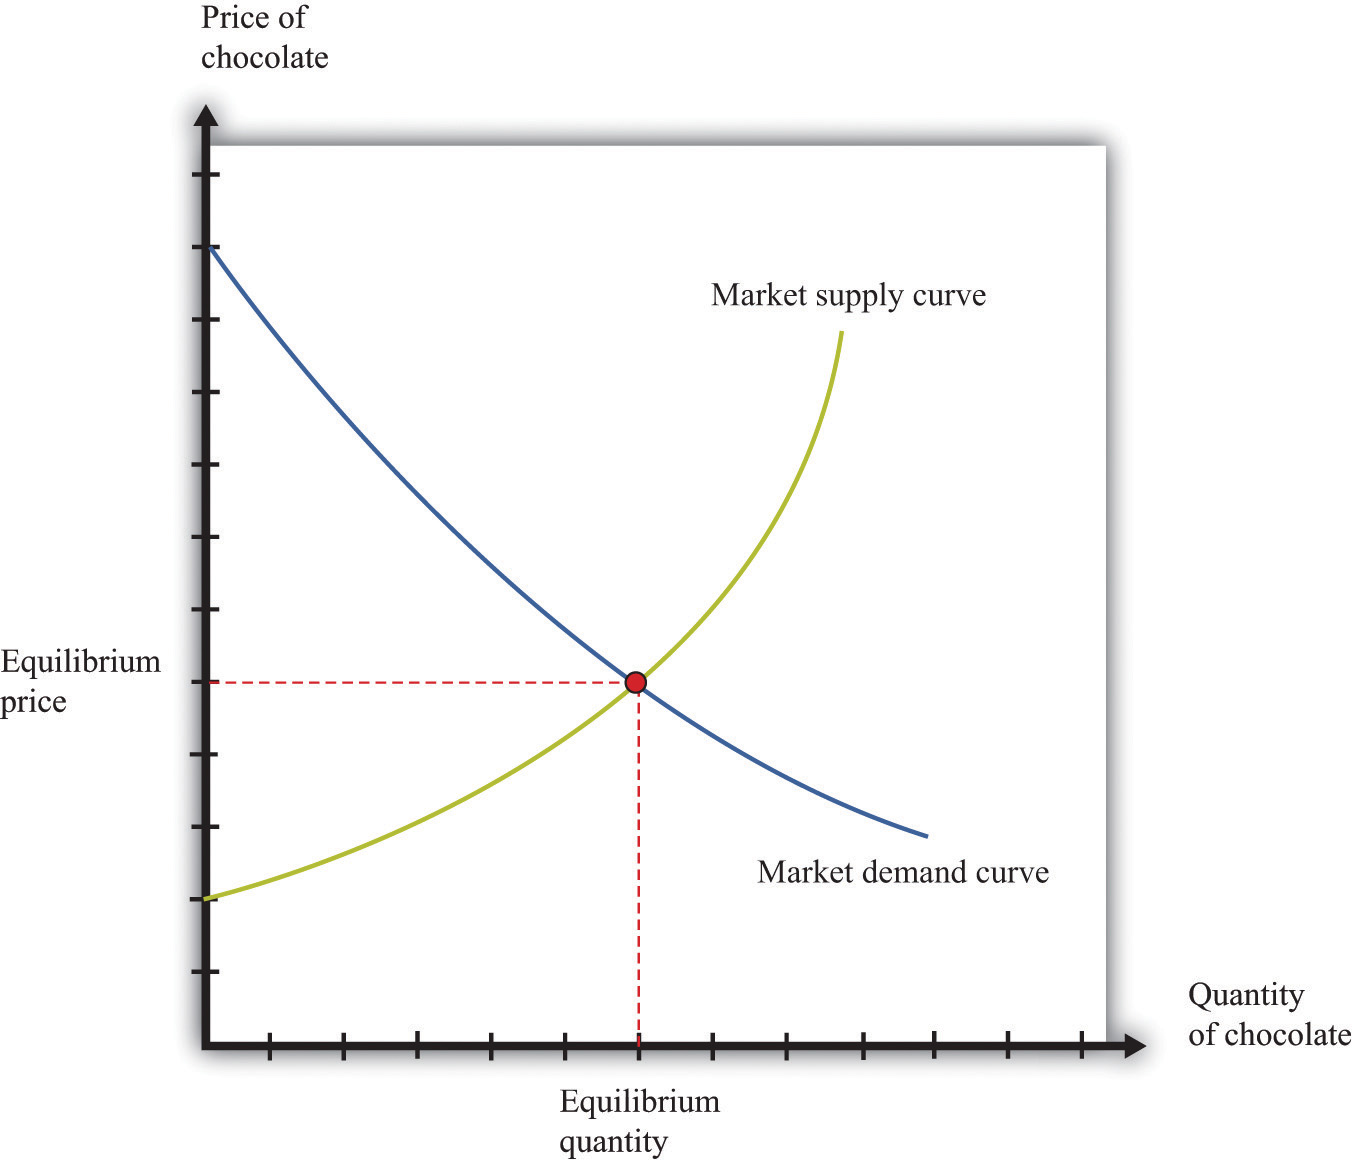 positive cross price elasticity of demand example